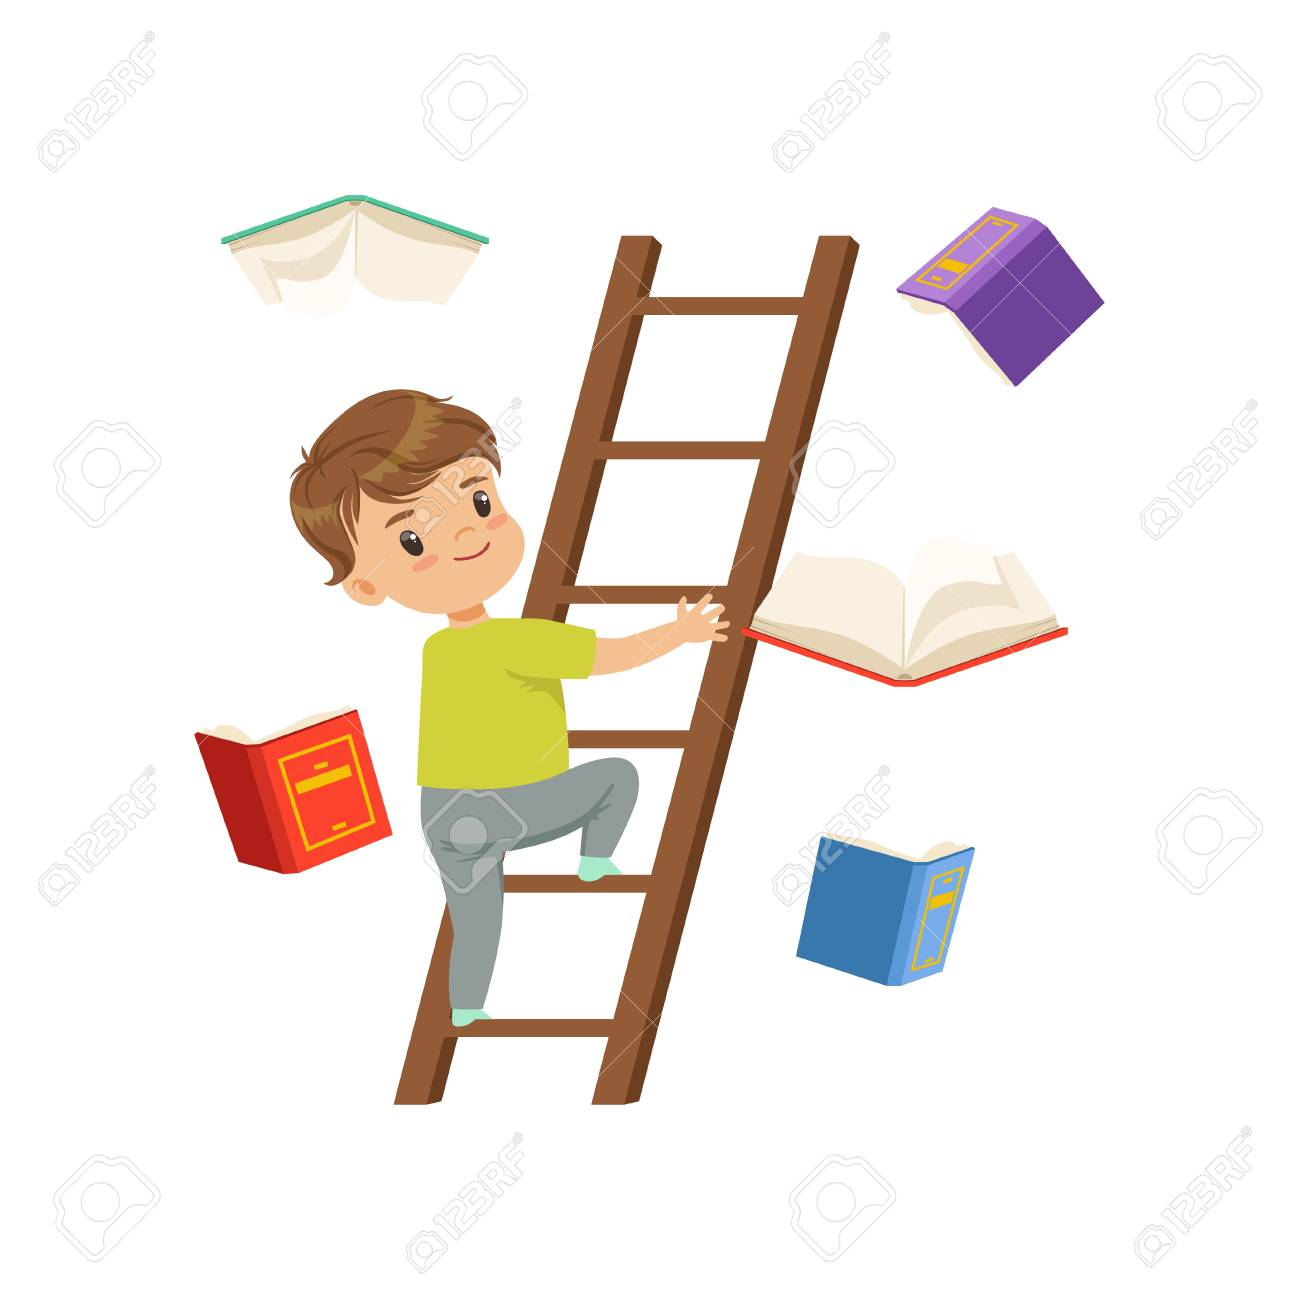 Cute little boy character climbing up wooden ladder, books falling next to him vector Illustration on a white background - 102020908